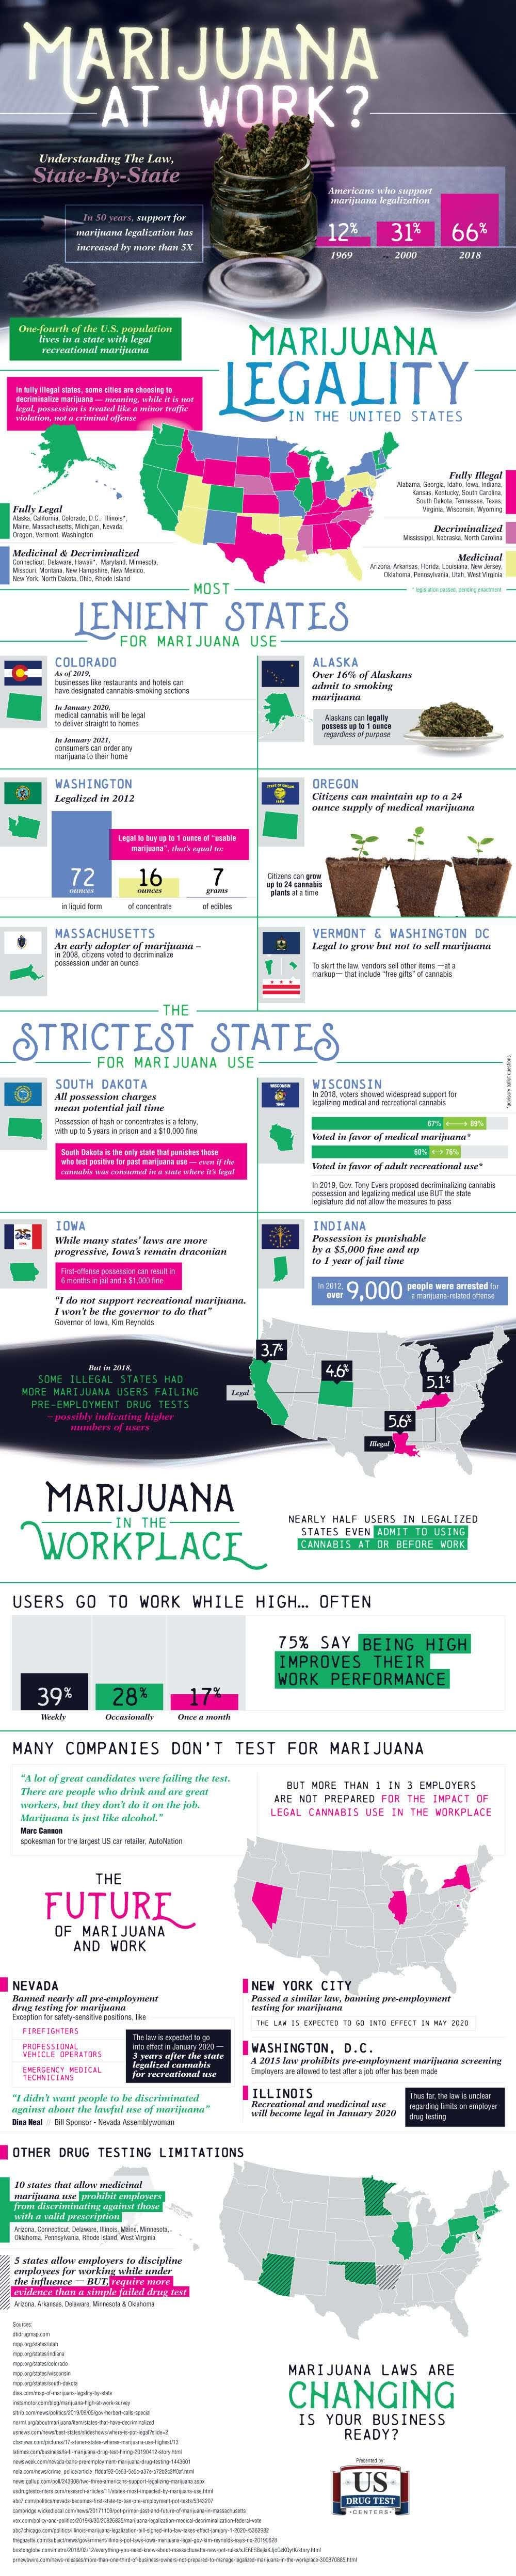 Leniency of Marijuana Use By State #infographic